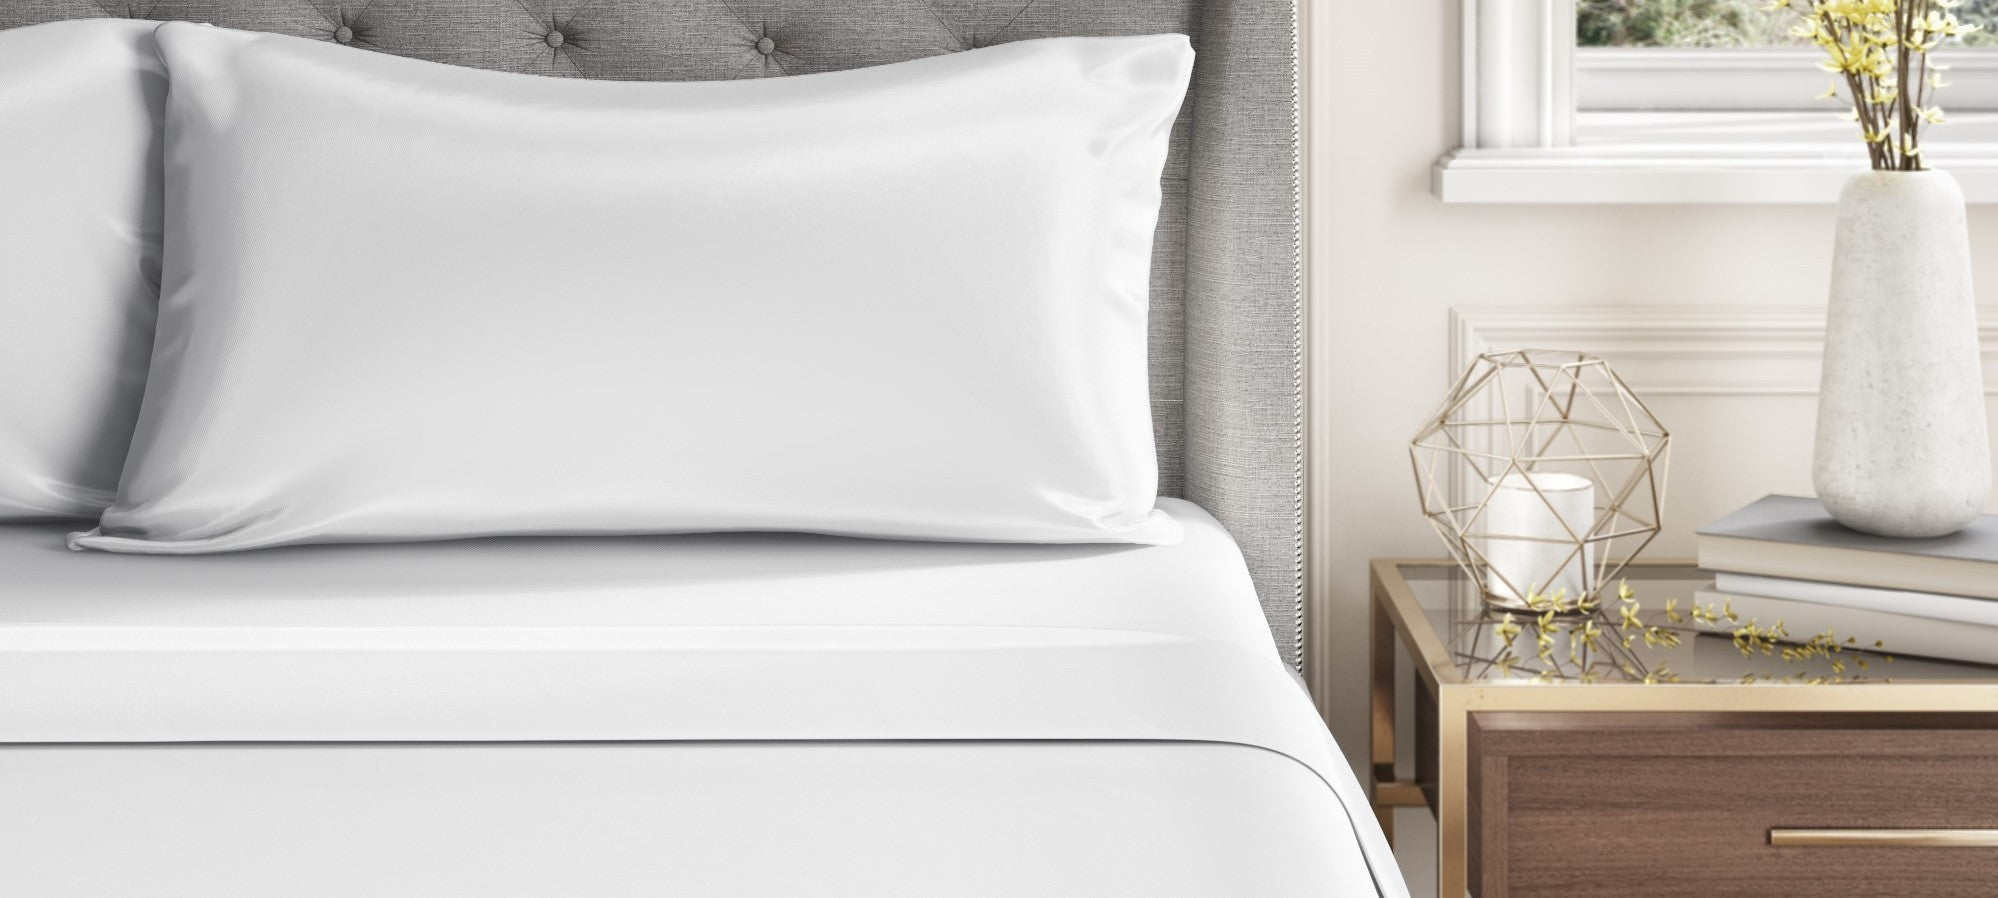 A close up of an ivory silk pillow and sheets, showing a head board and metal and wood side table